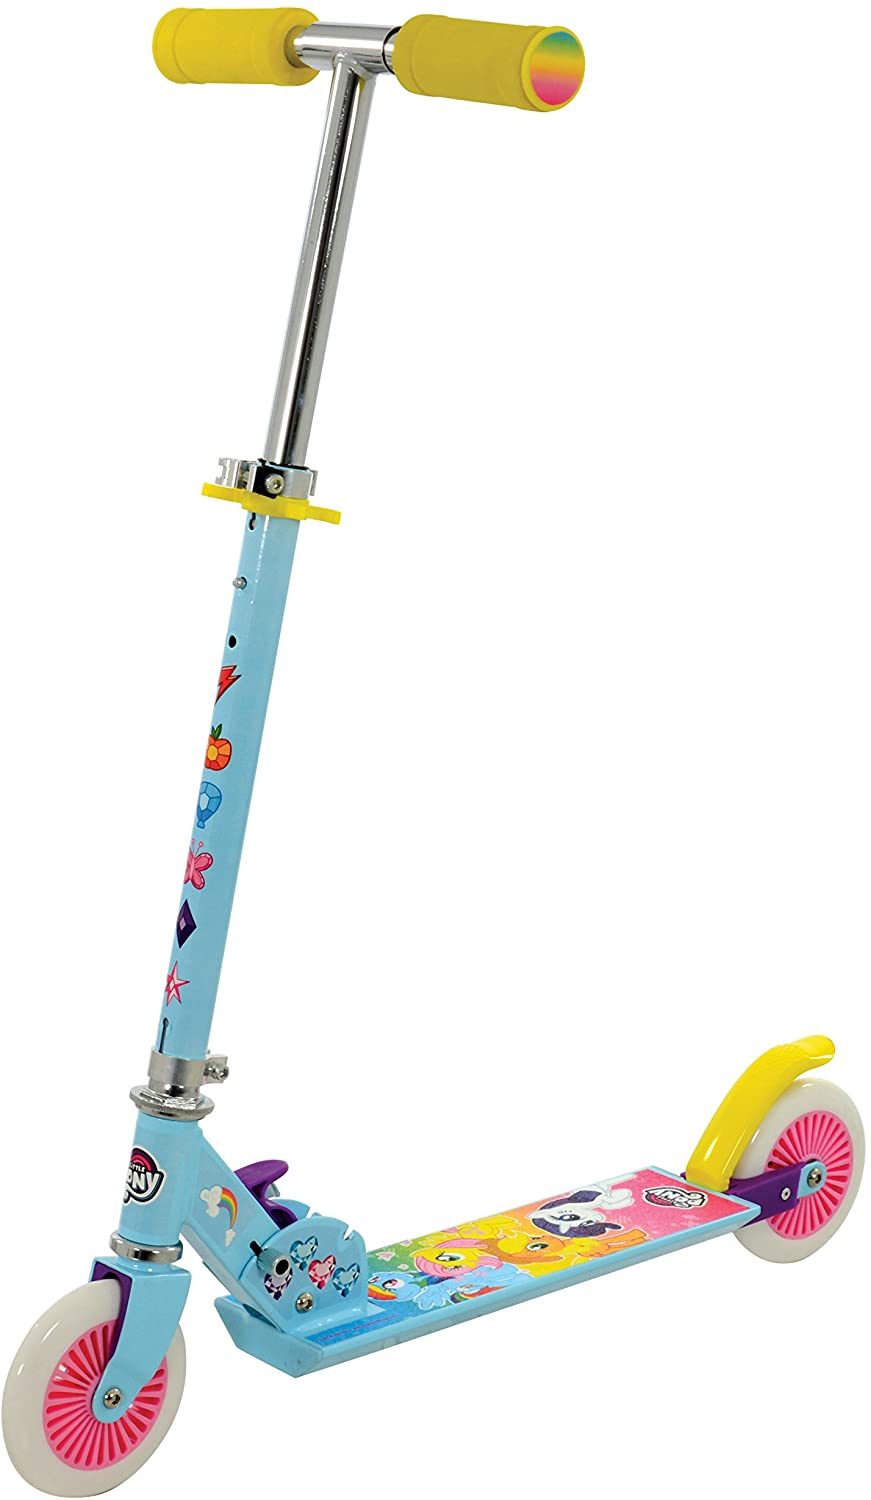 My Little Pony Scooter.